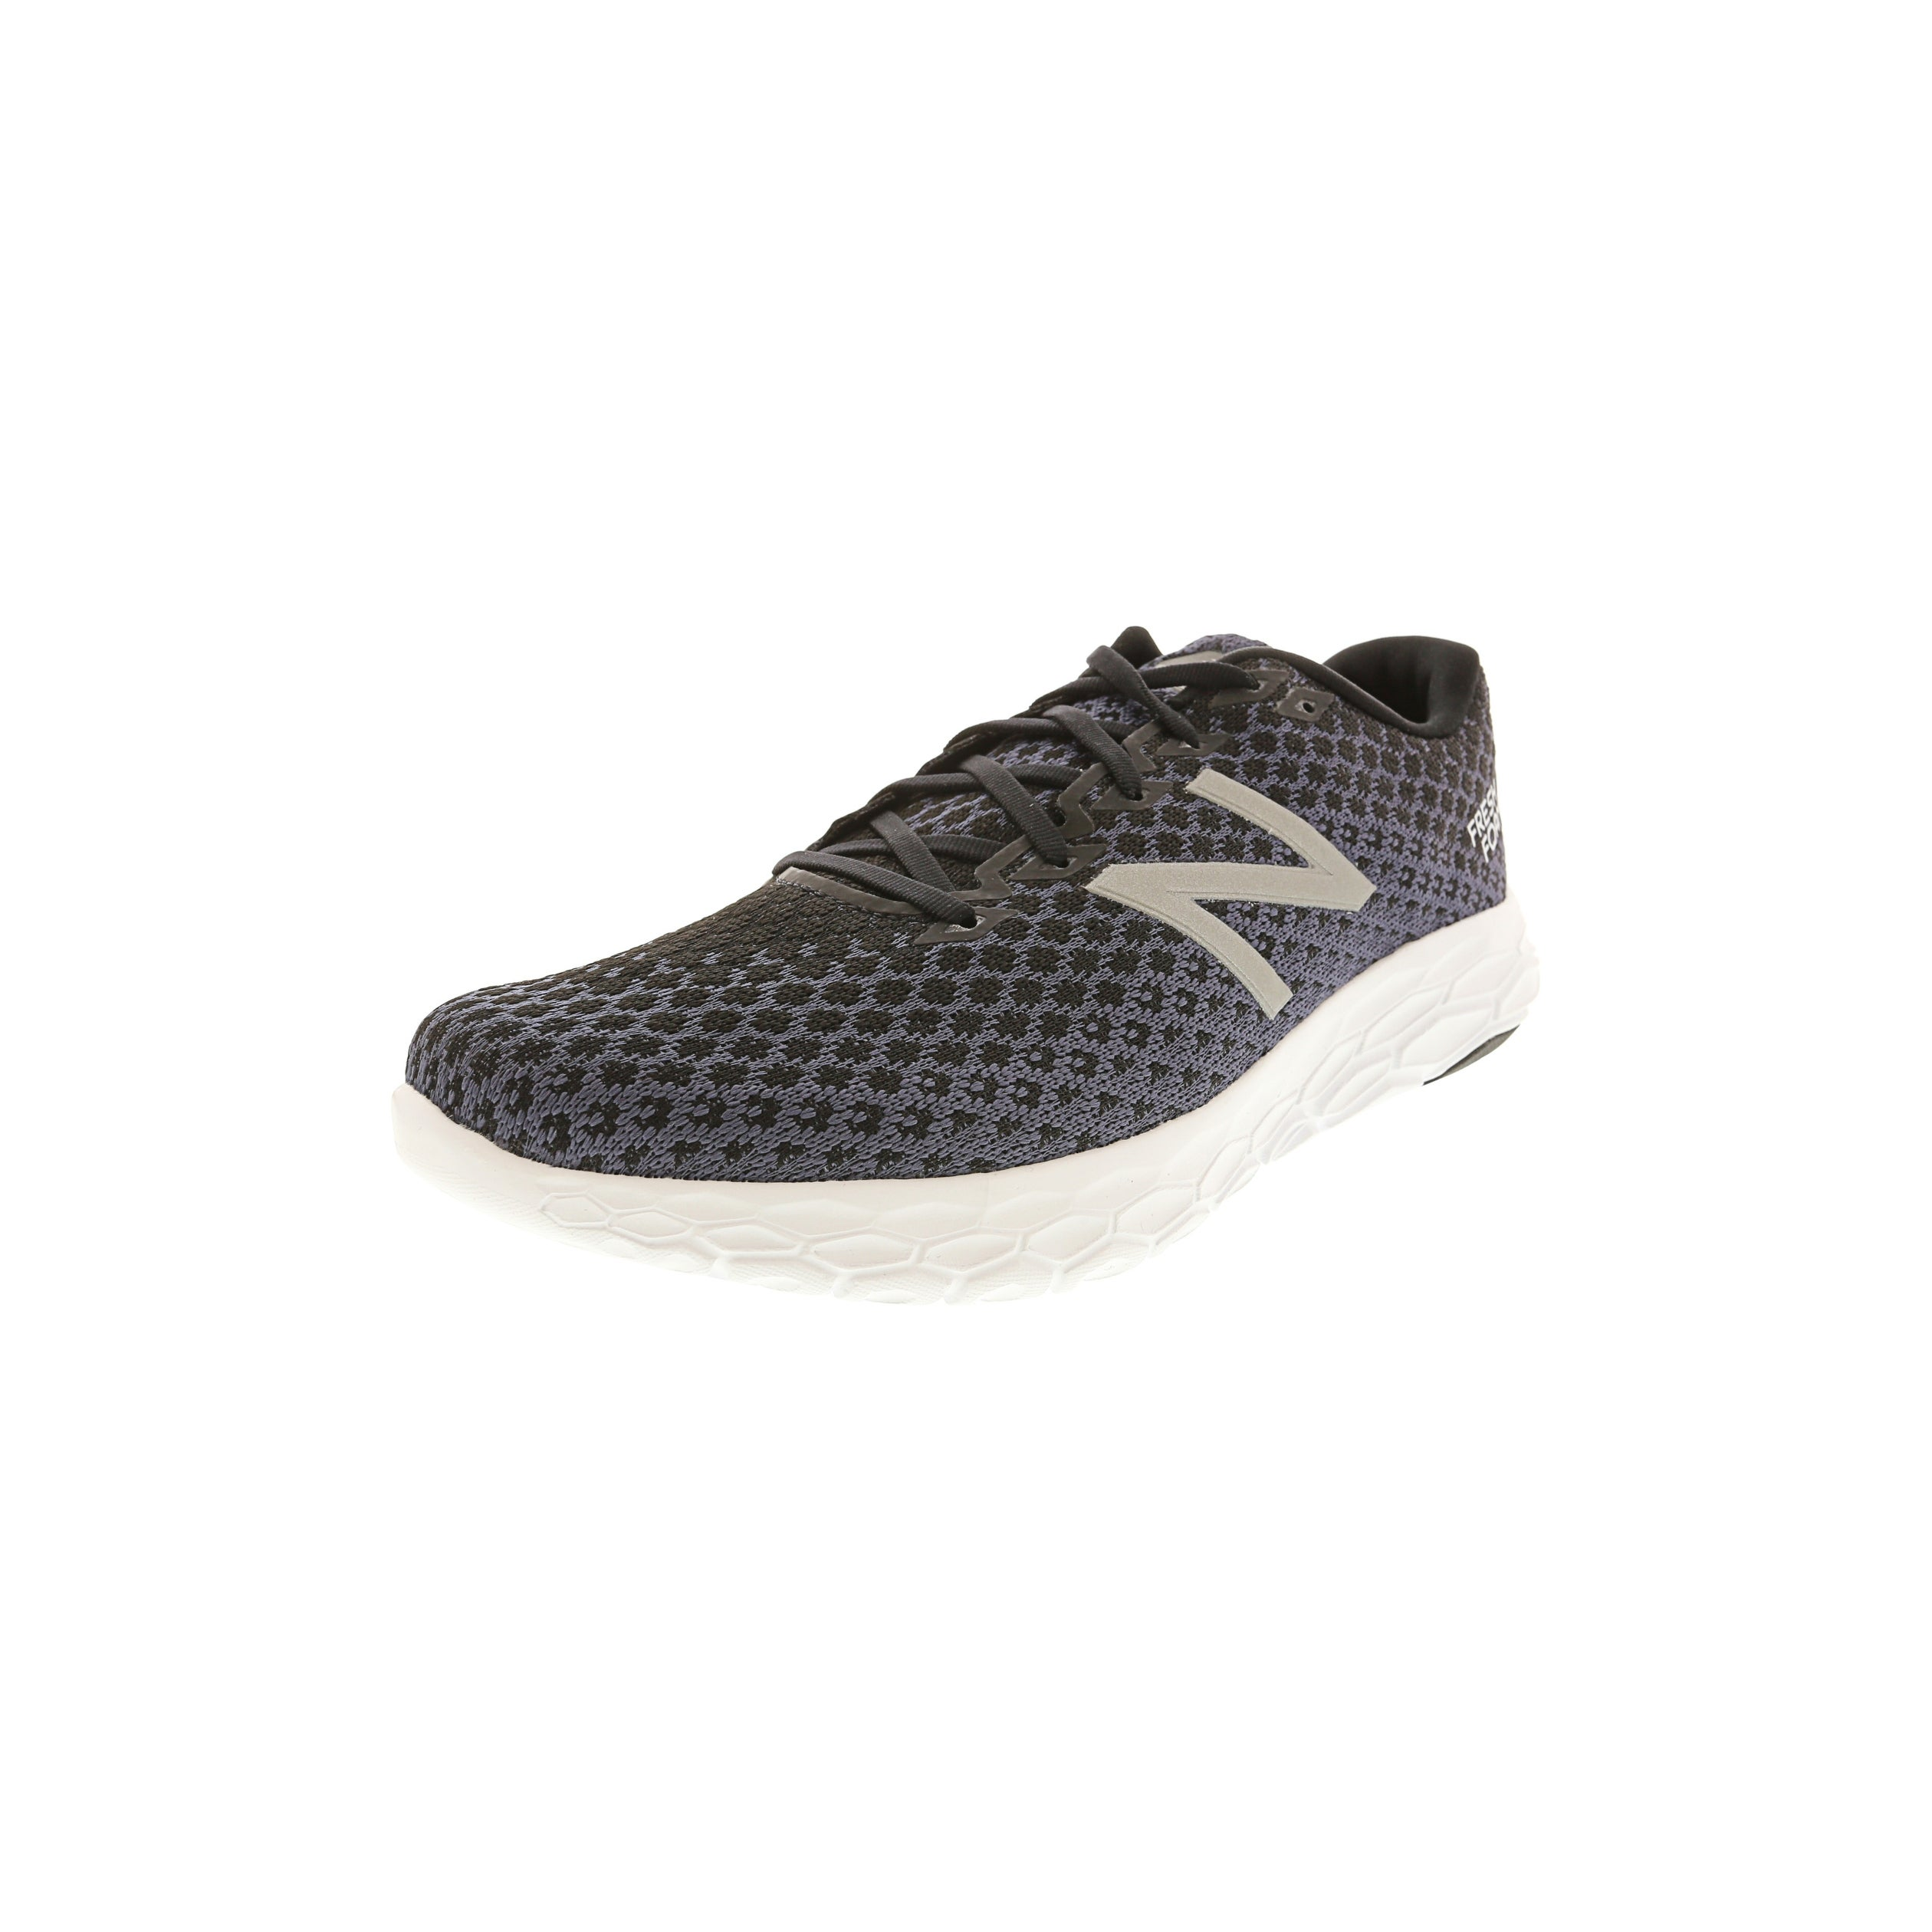 Mbecn Ankle-High Mesh Running Shoe